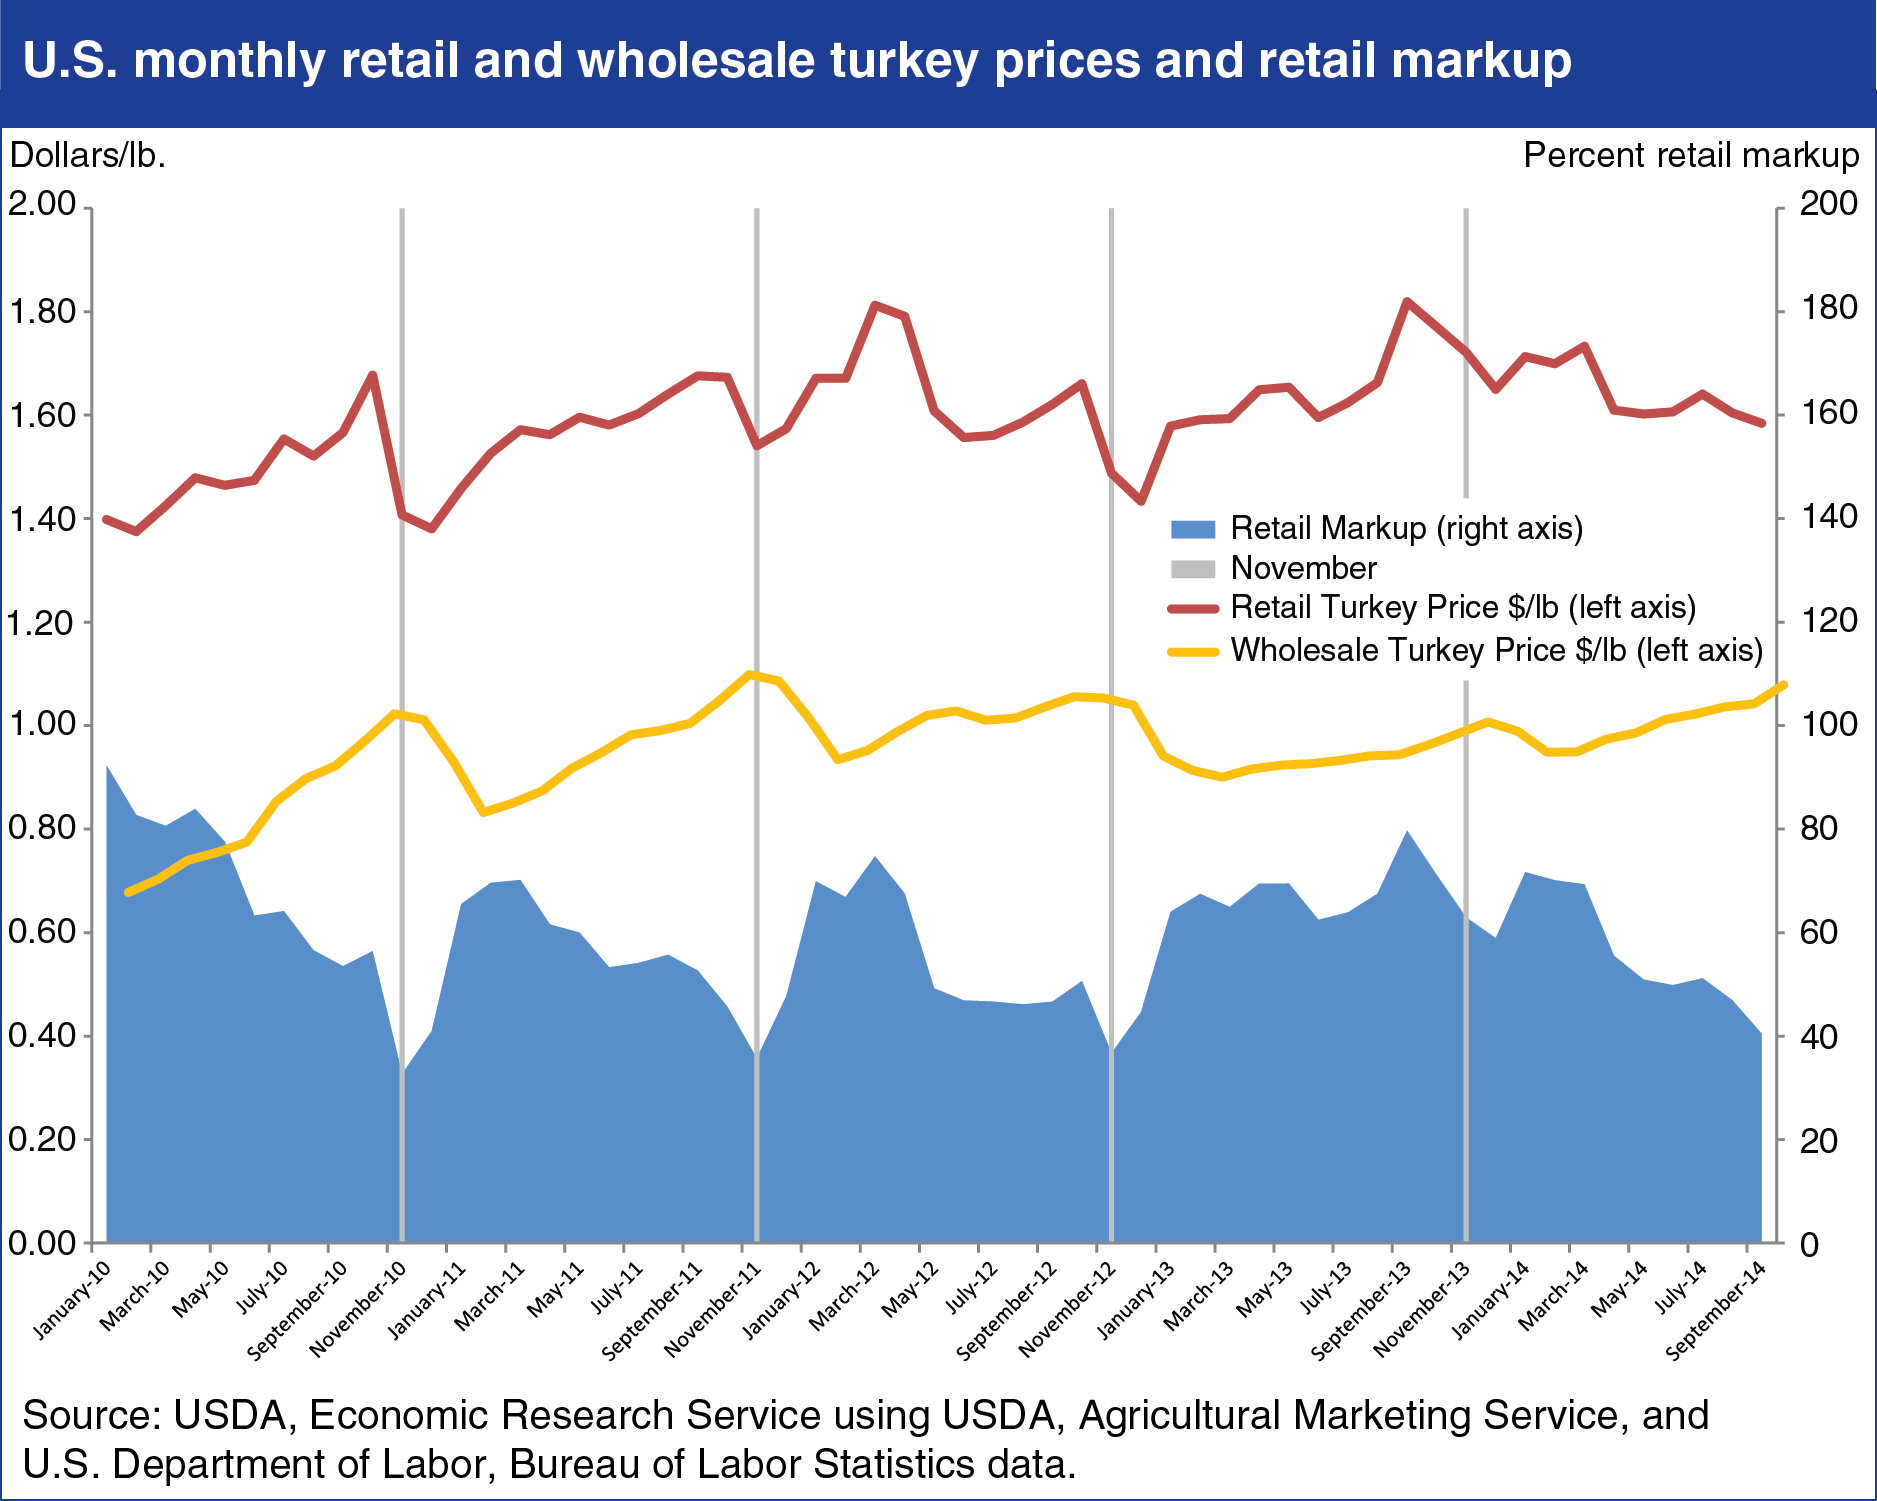 U.S. Monthly Retail and Wholesale Turkey Prices